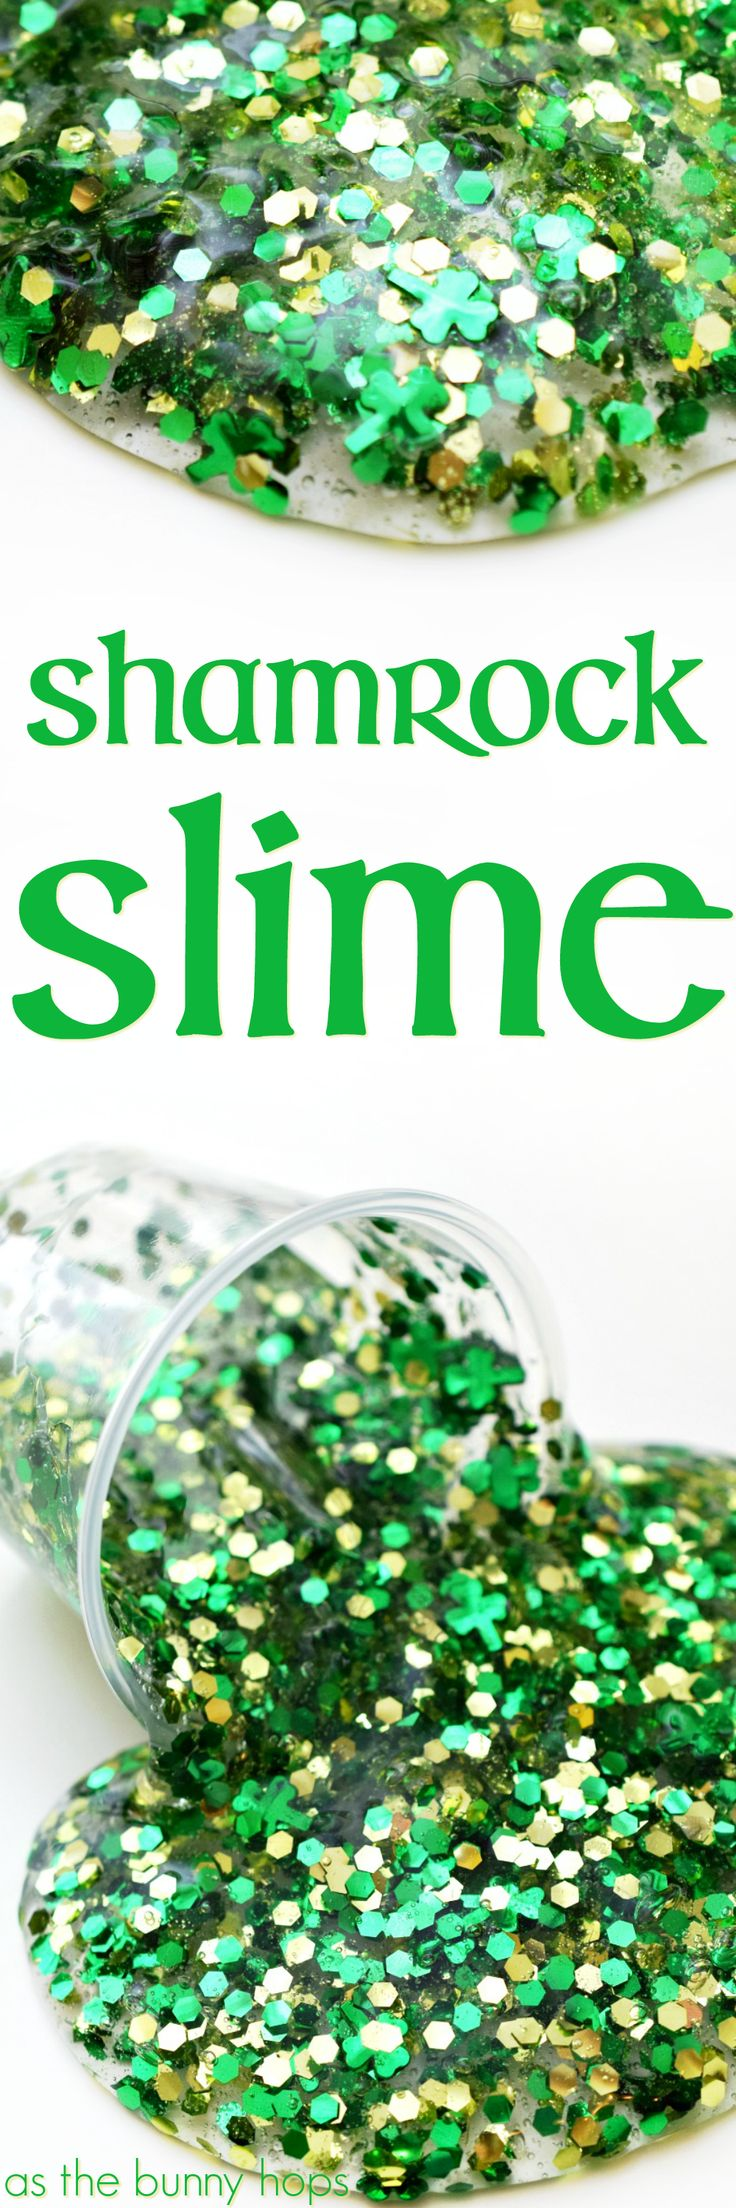 Celebrate St. Patrick's Day with a cup of colorful and fun Shamrock Slime! What a fun kids craft for St. Patrick's Day.